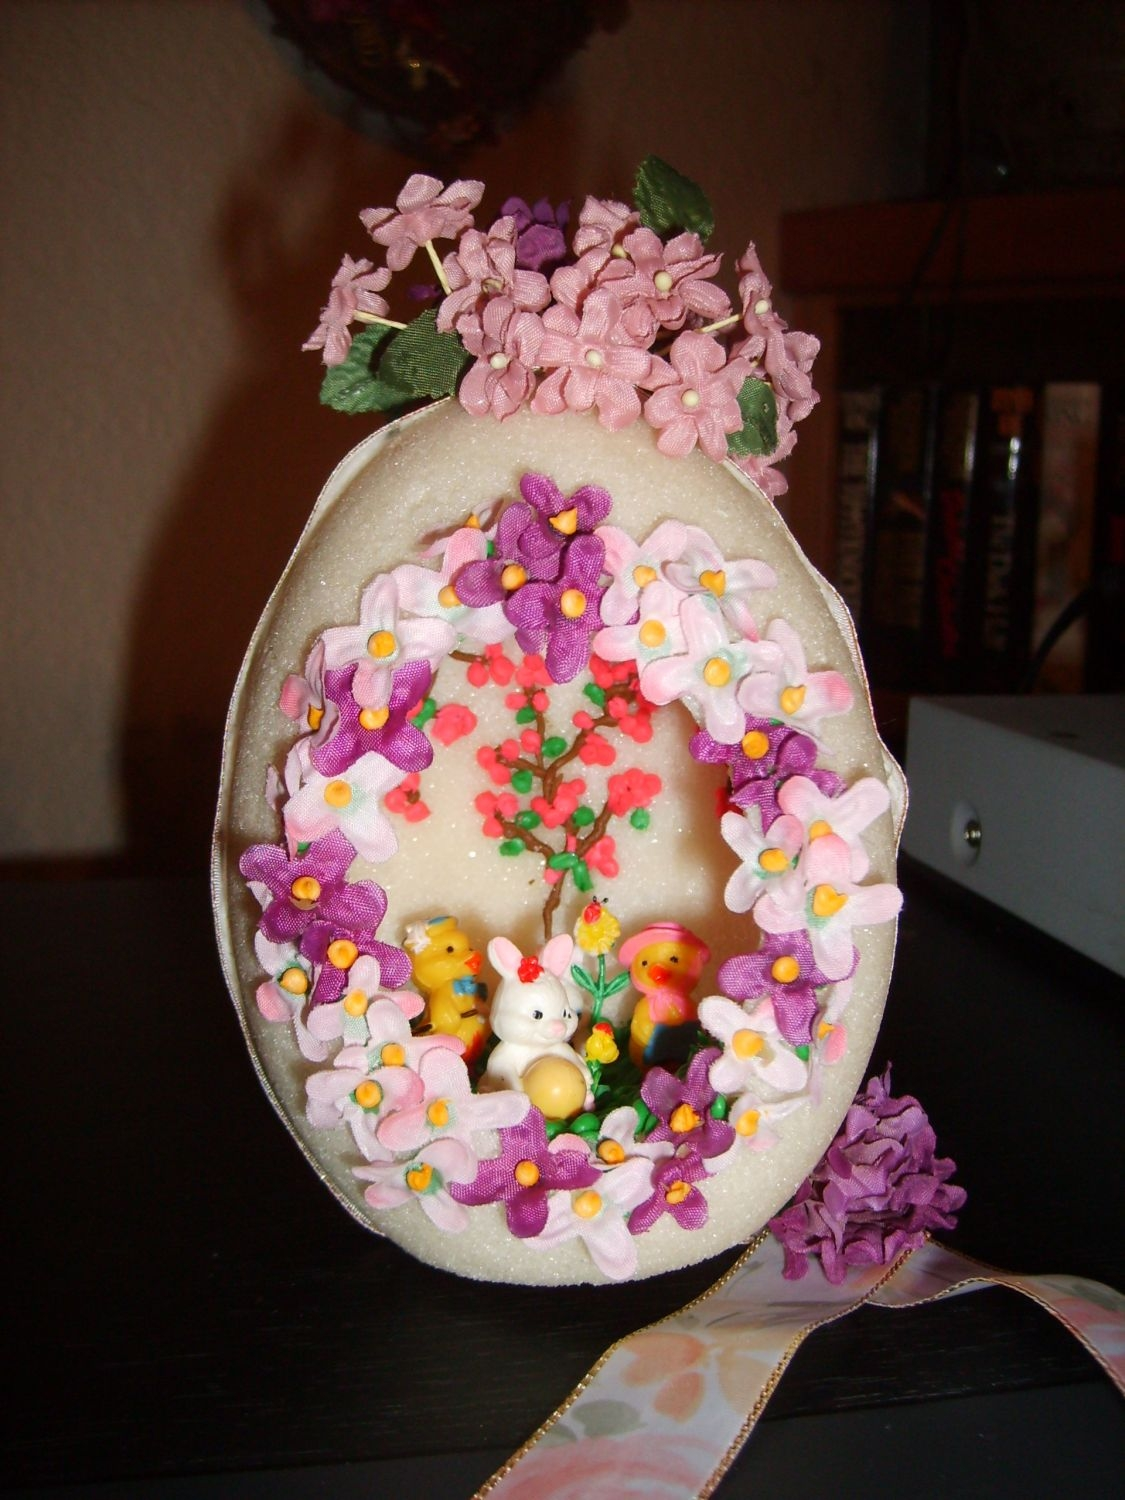 Sugar Egg  My first sugar egg. I started this egg 13 years ago before I knew what I was doing. I sealed the 2 halves together so I had to decorate the...